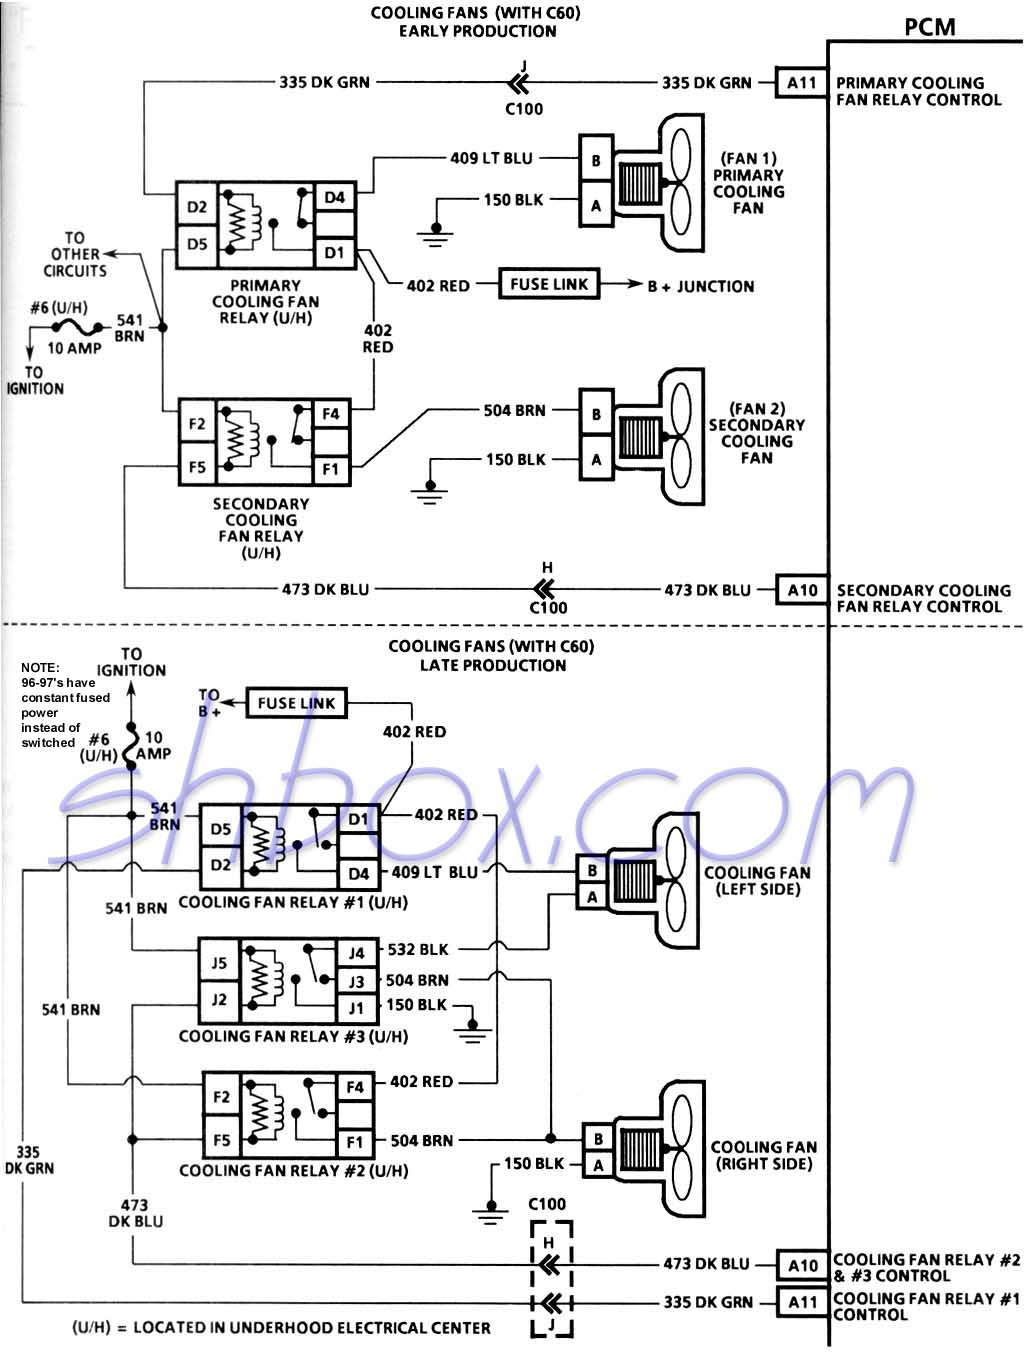 Honda Civic Why Wont My Windshield Wipers Work 377622 together with 316zm Printable 1992 Honda Civic 4 Door Fuse Box moreover 92 Civic D15 Engine Harness Diagram 3122412 further IU6f 18585 further Honda Cooling Diagram. on 94 civic fuse box diagram